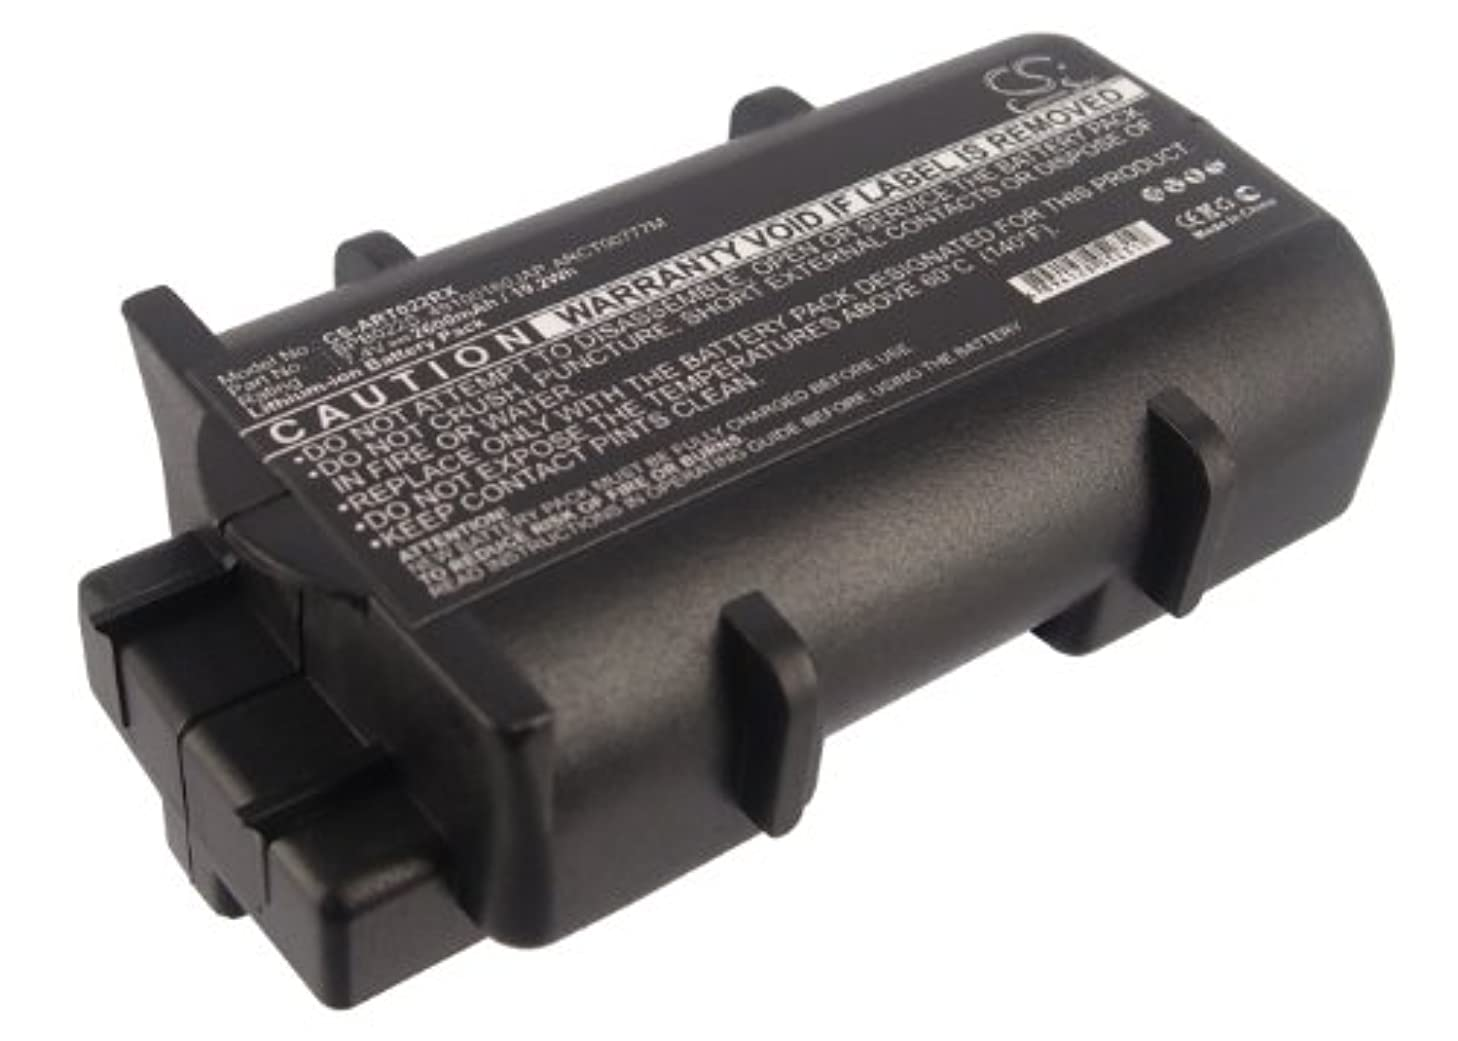 Cameron Sino 2600mAh Battery Compatible with Arris TM602G/115, TM02AC1G6, TG862G, TG852G, TM502G, TM602G, TM702G, TM722G, TM822G and Others